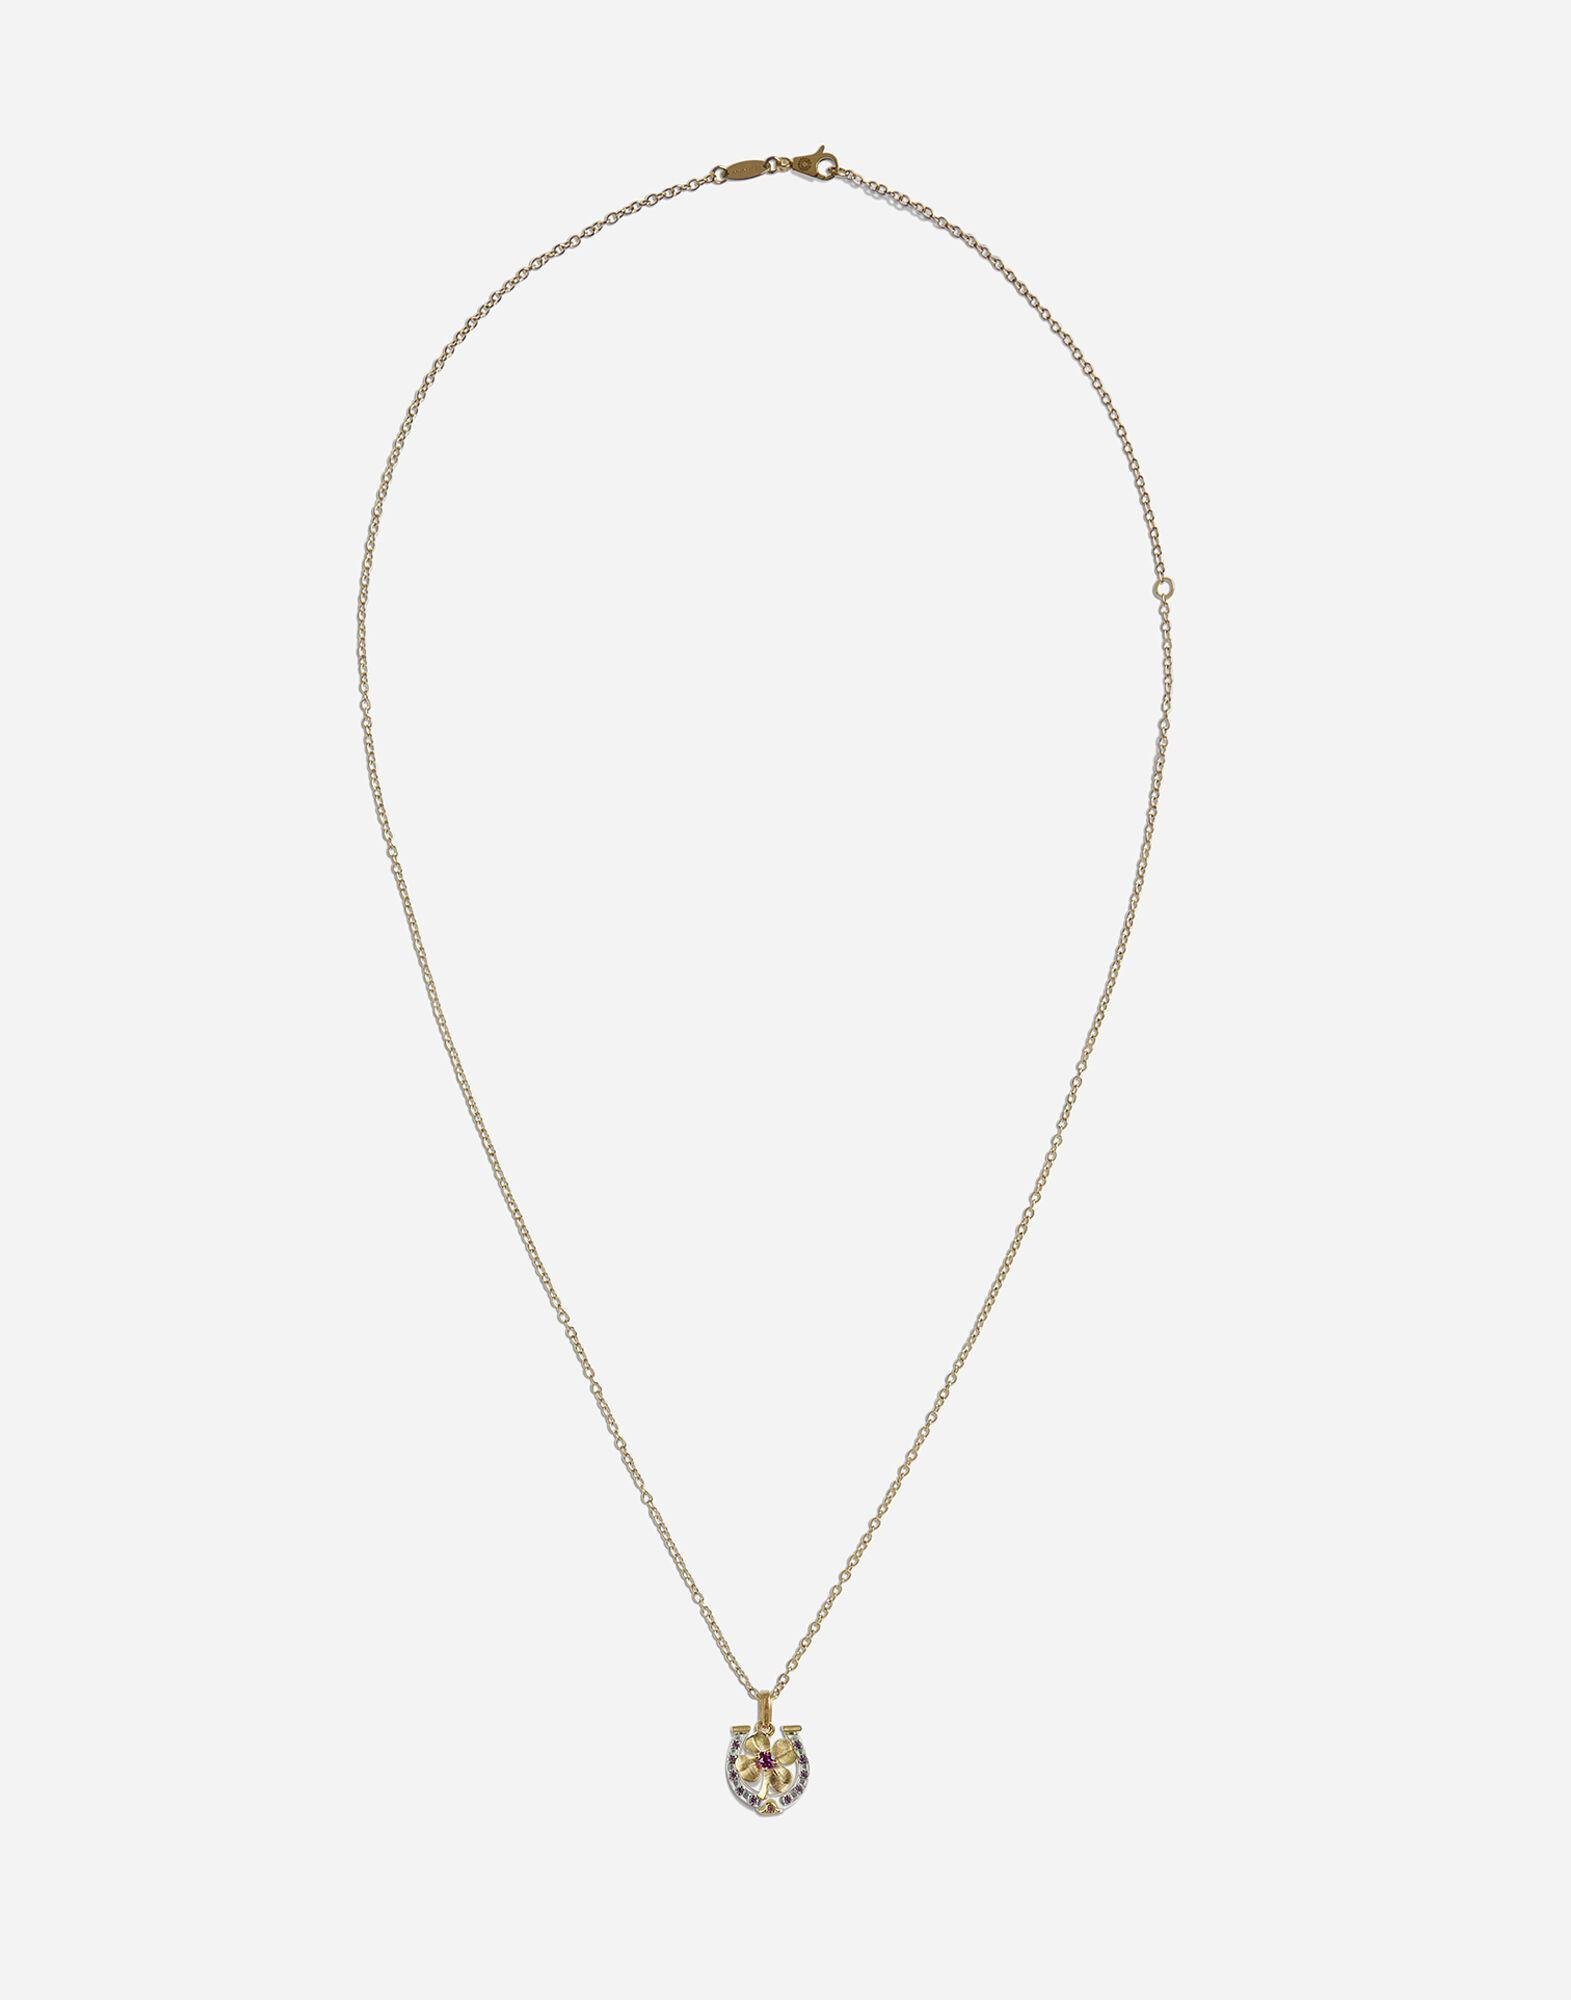 Necklace with good luck charm